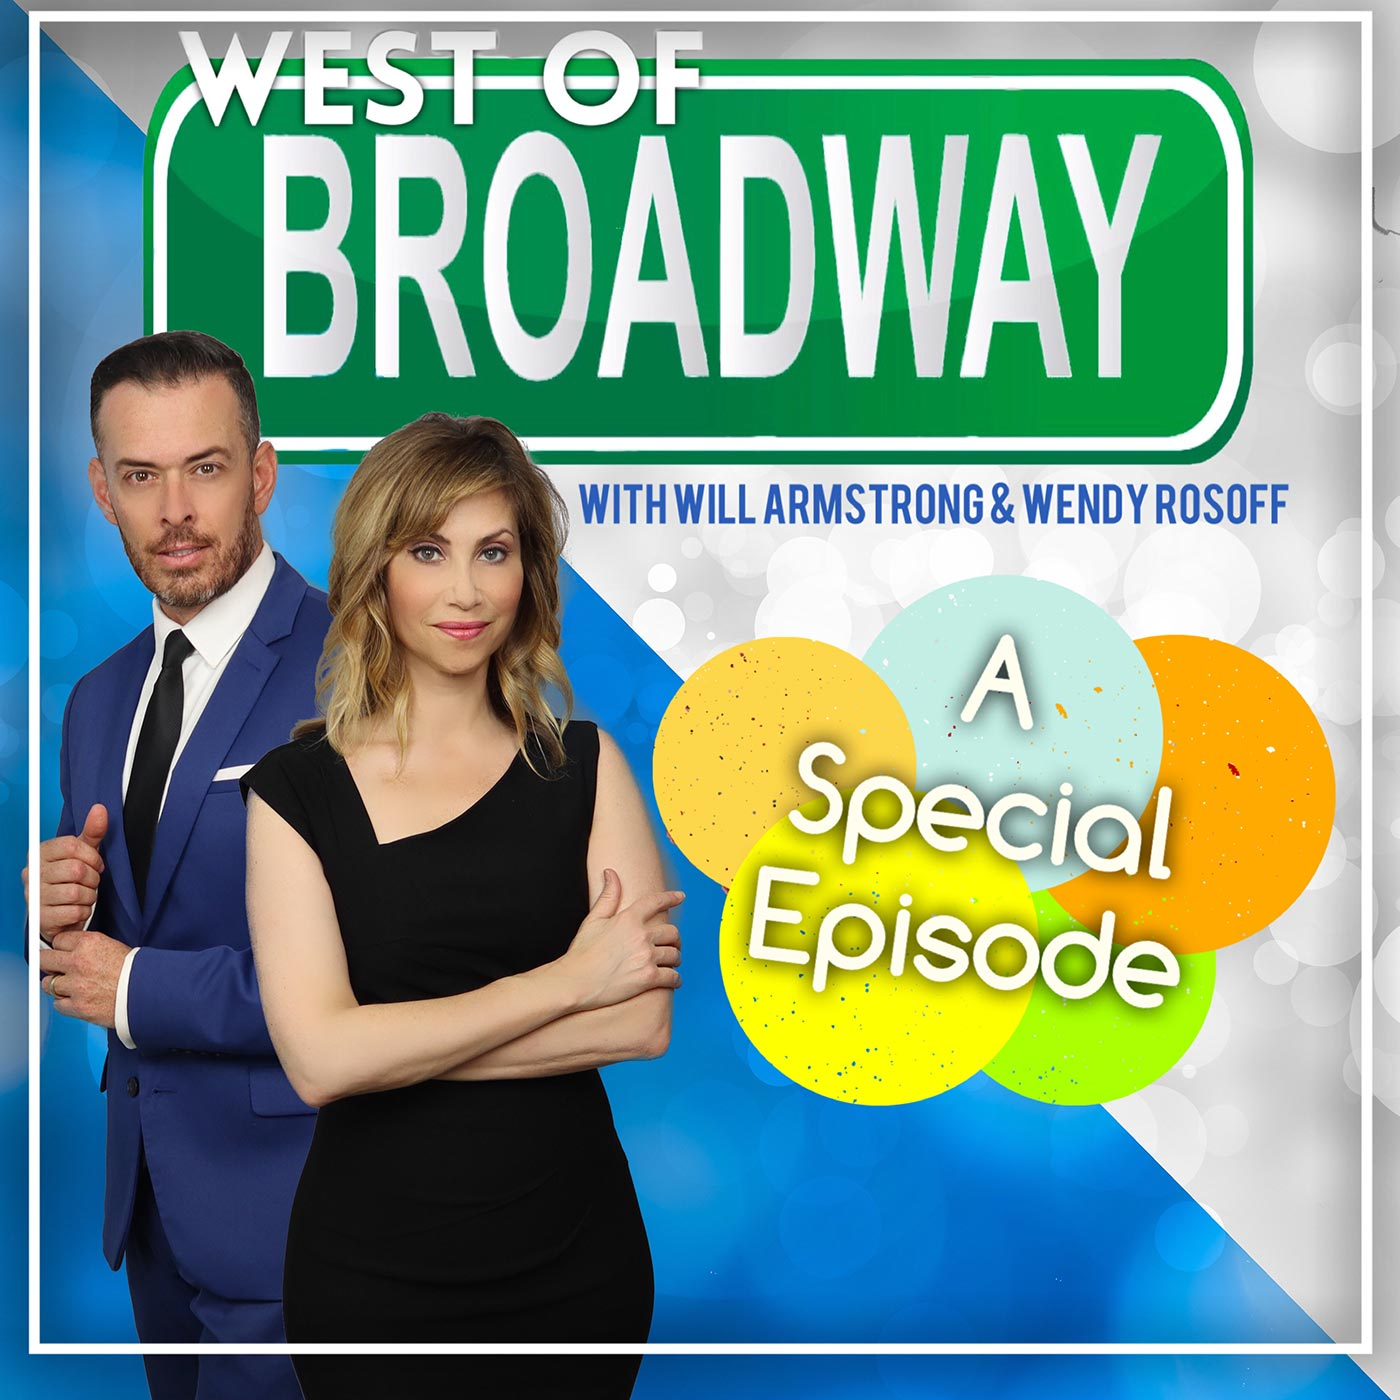 West of Broadway Special Episode COVID-19 Response